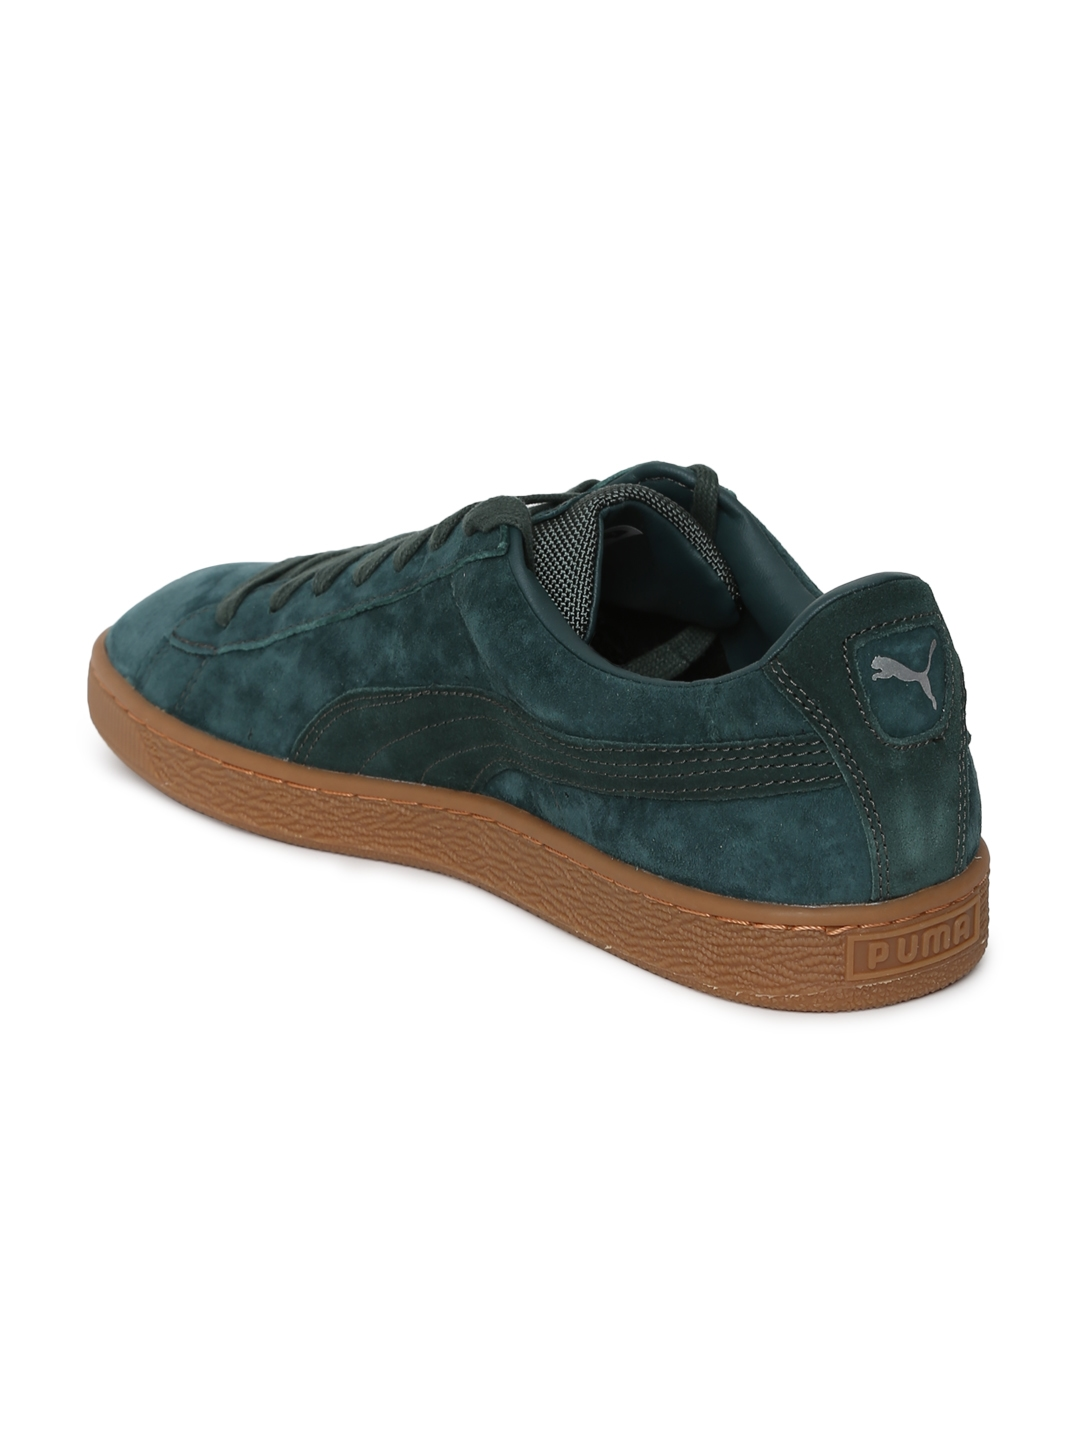 aaa462cd8a5dc8 Puma Unisex Green Basket Classic Weatherproof Taffy Suede Sneakers